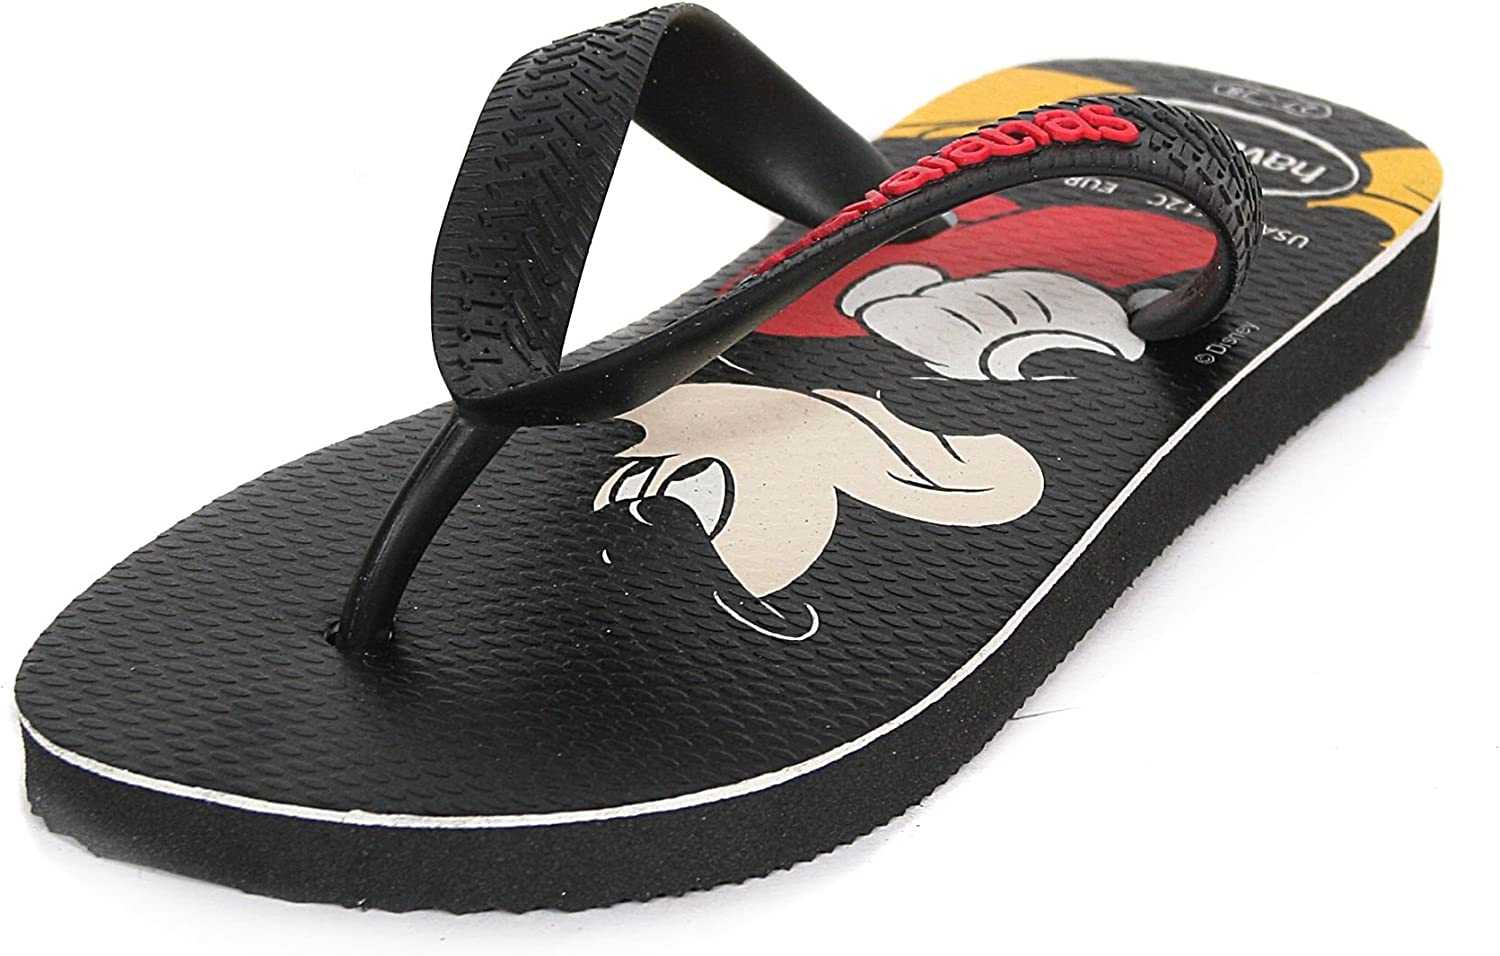 Flip Flops Sandals Mickey Mouse